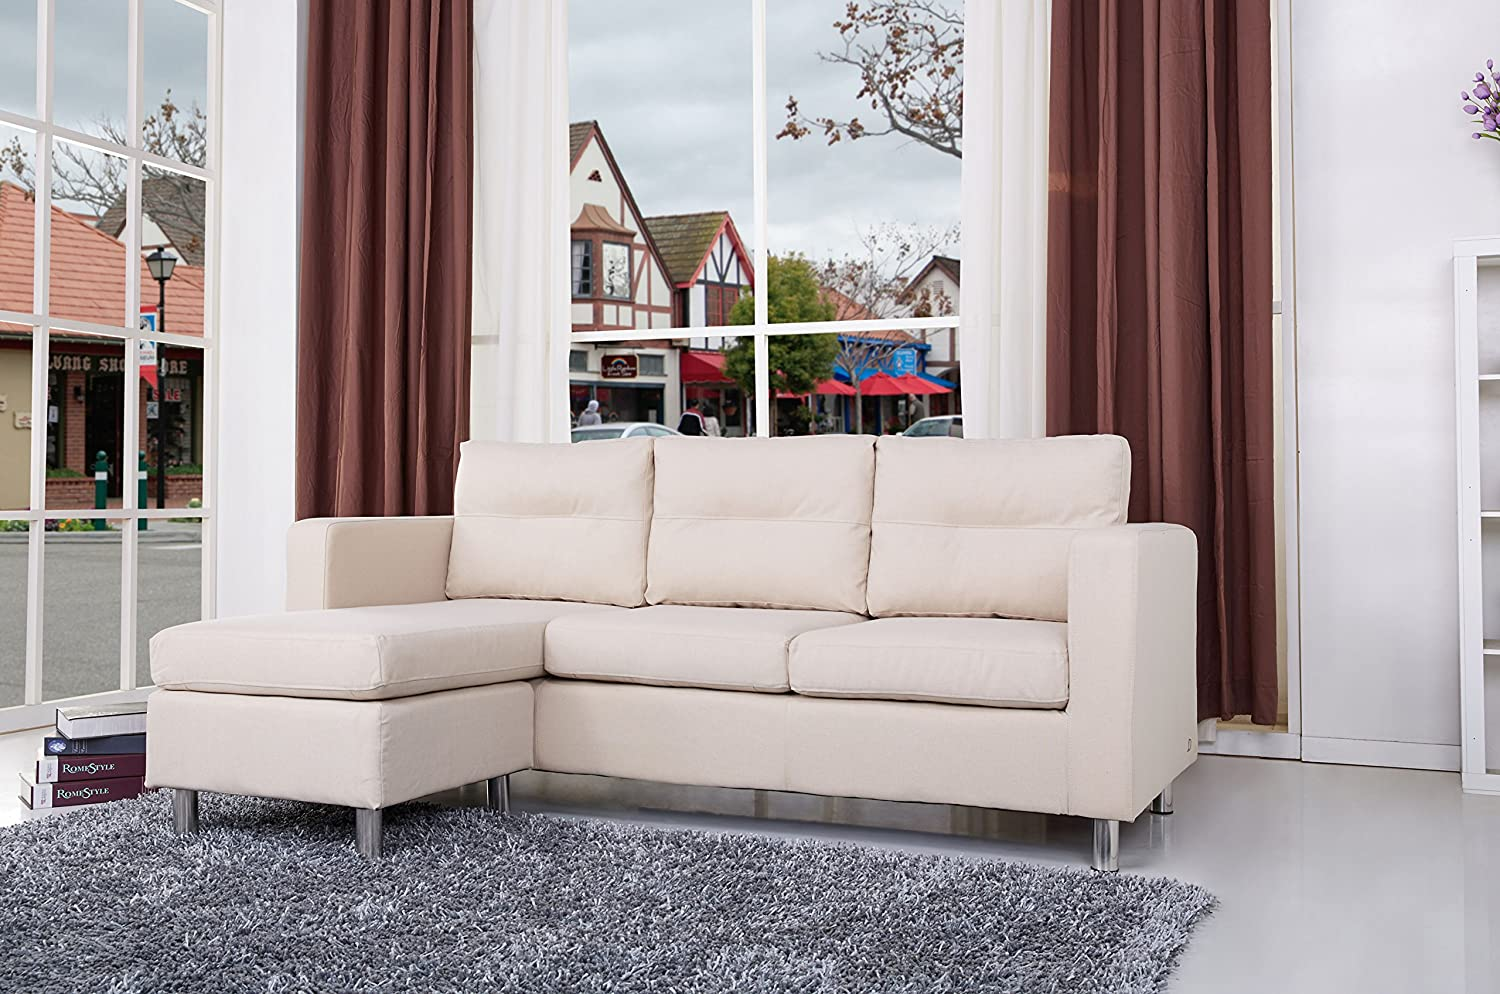 Gold Sparrow Detroit Convertible Sectional Sofa and Ottoman - Beige